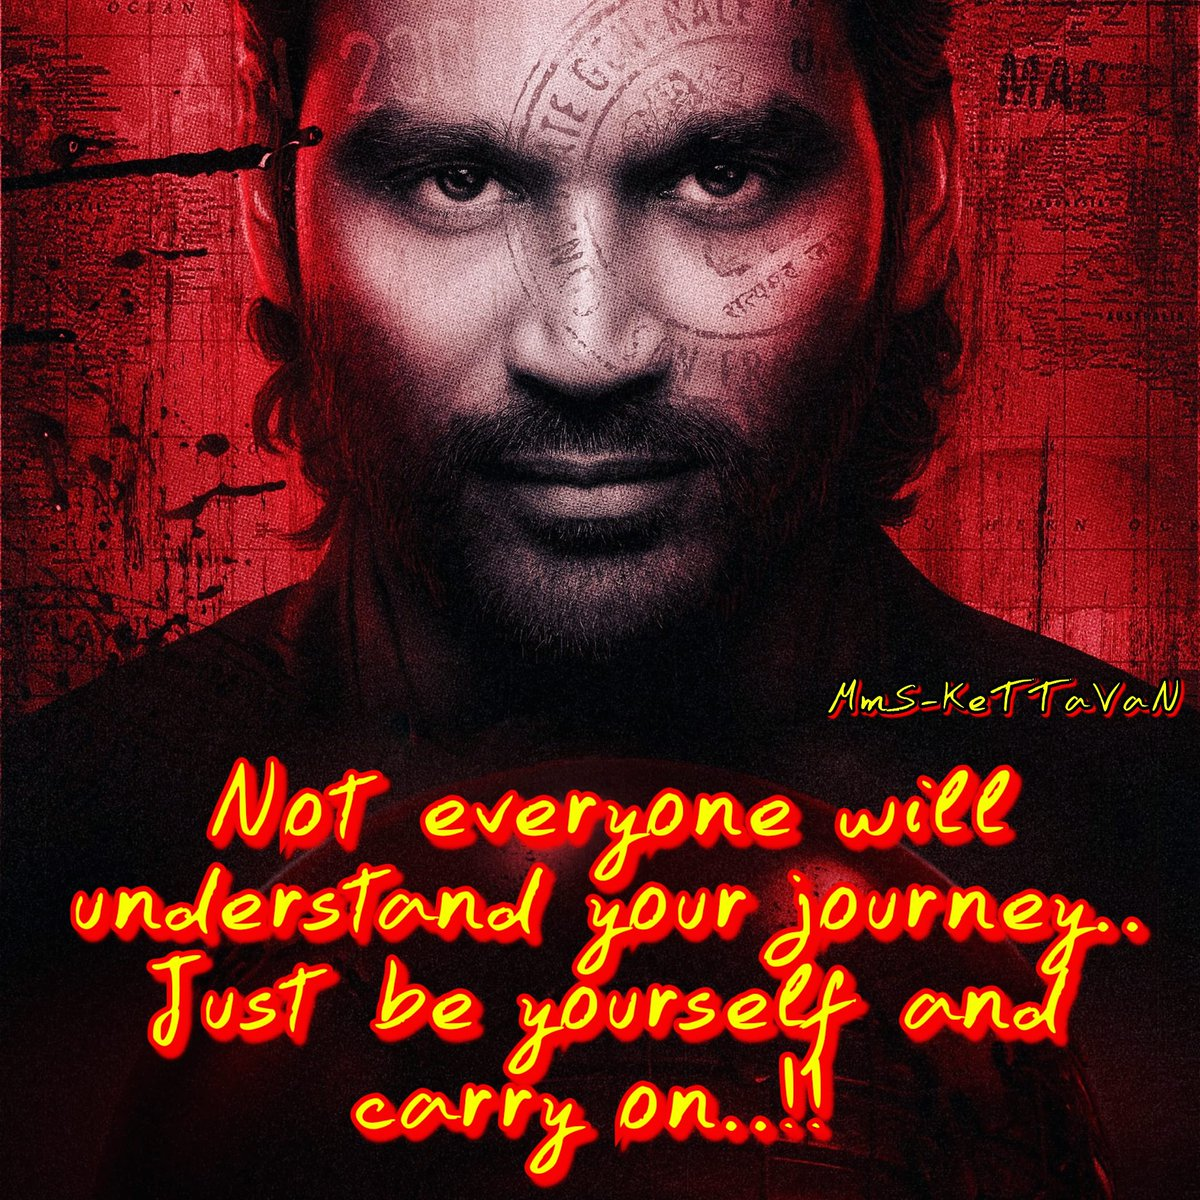 not everyone will understand your journey.. just be yourself and carry on.....!!!!!!!!! pic.twitter.com/fQExnRV9G2